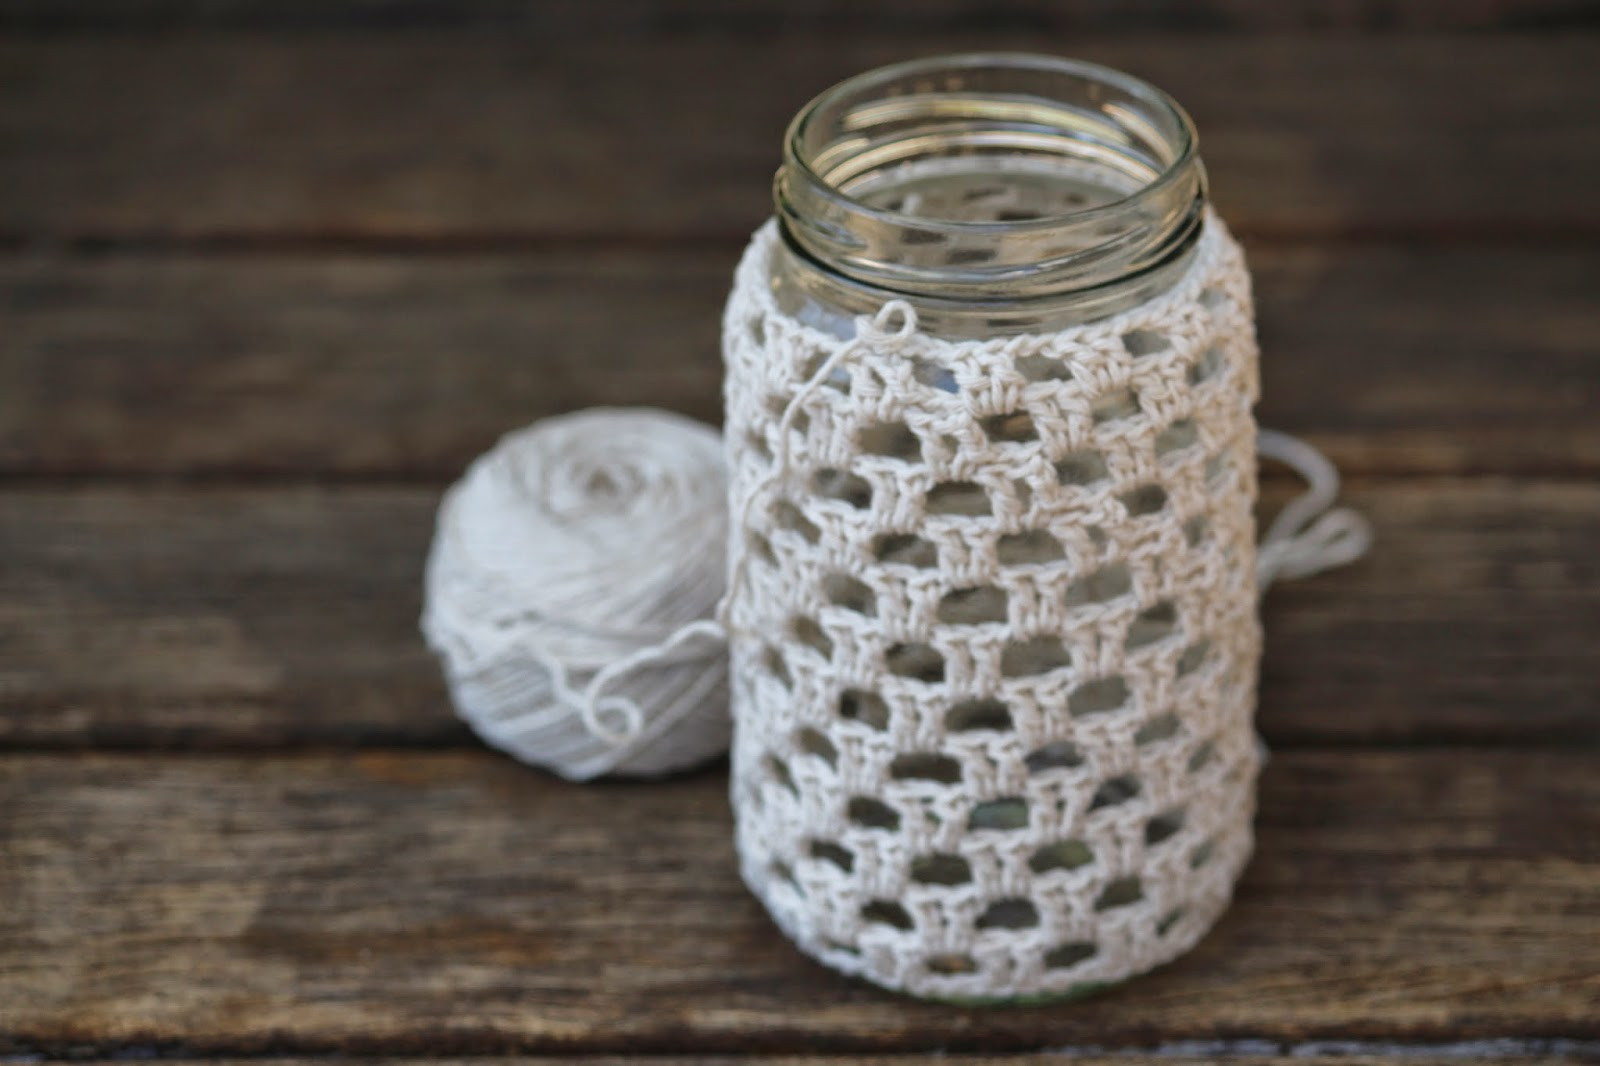 Crochet Patterns Jar Covers : ... of the initial Ch 2. Check the fit on your jar after every few rows